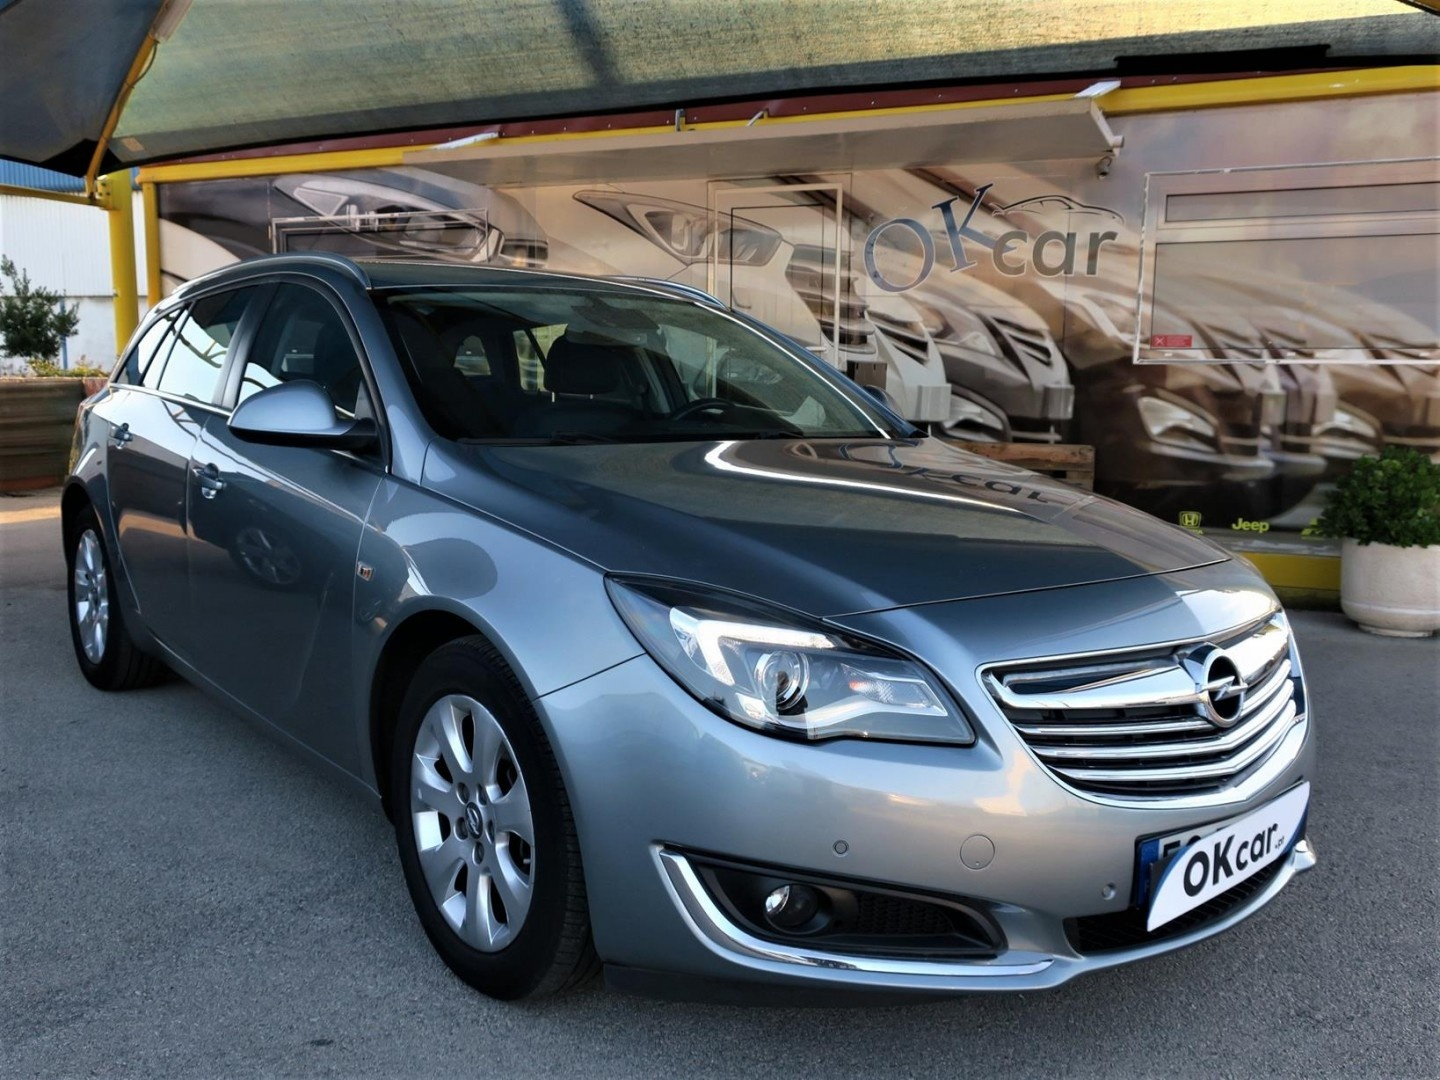 Opel Insignia Sports Tourer 2.0 CDTi Executive 140cv